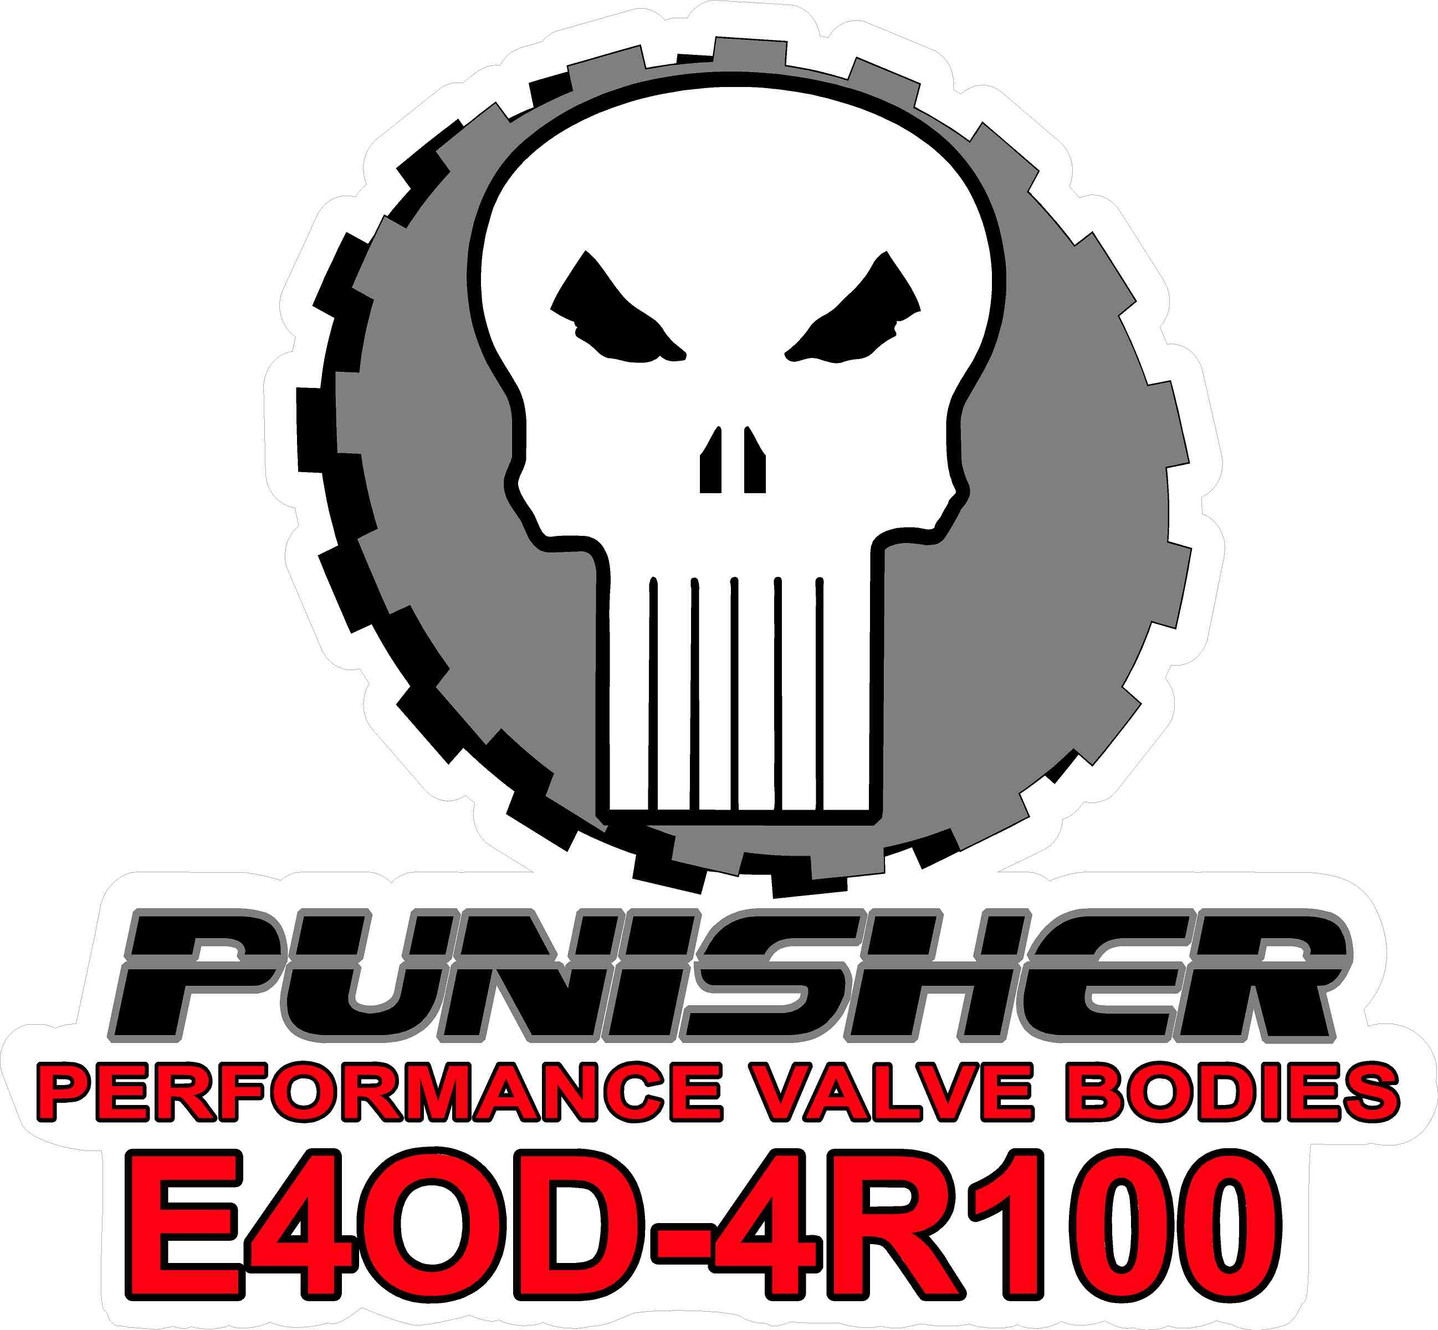 www.punishervalvebodies.com